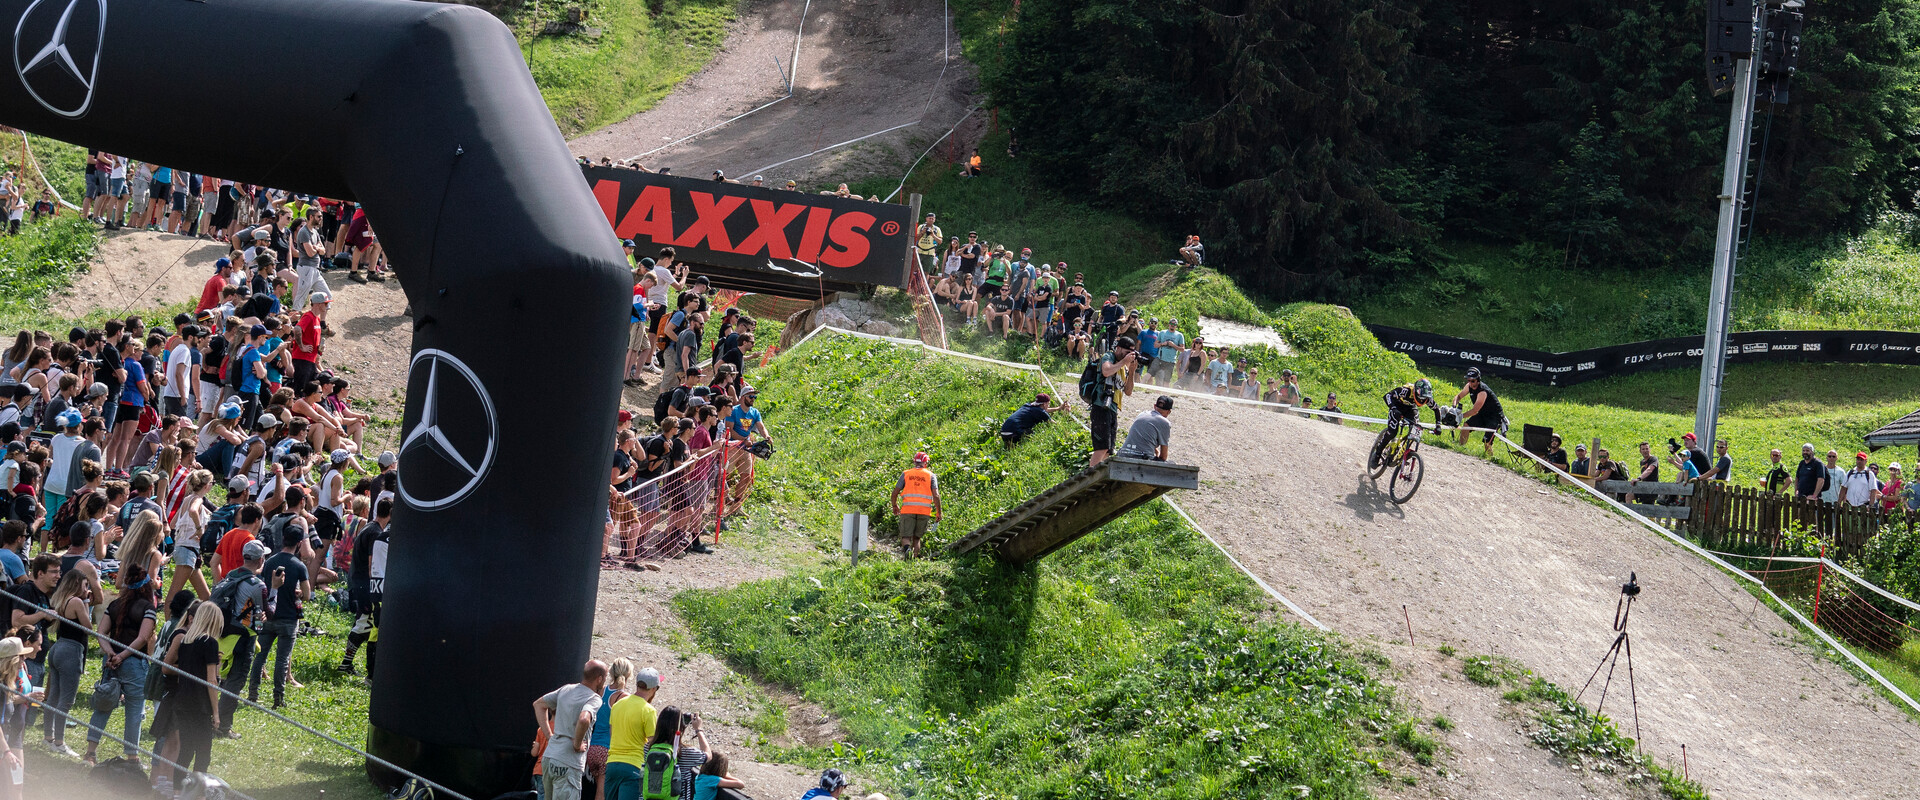 461194dc25e The World's Downhill Elite is getting ready to tackle the Mercedes-Benz UCI  Downhill Mountain Bike World Cup in Saalfelden Leogang